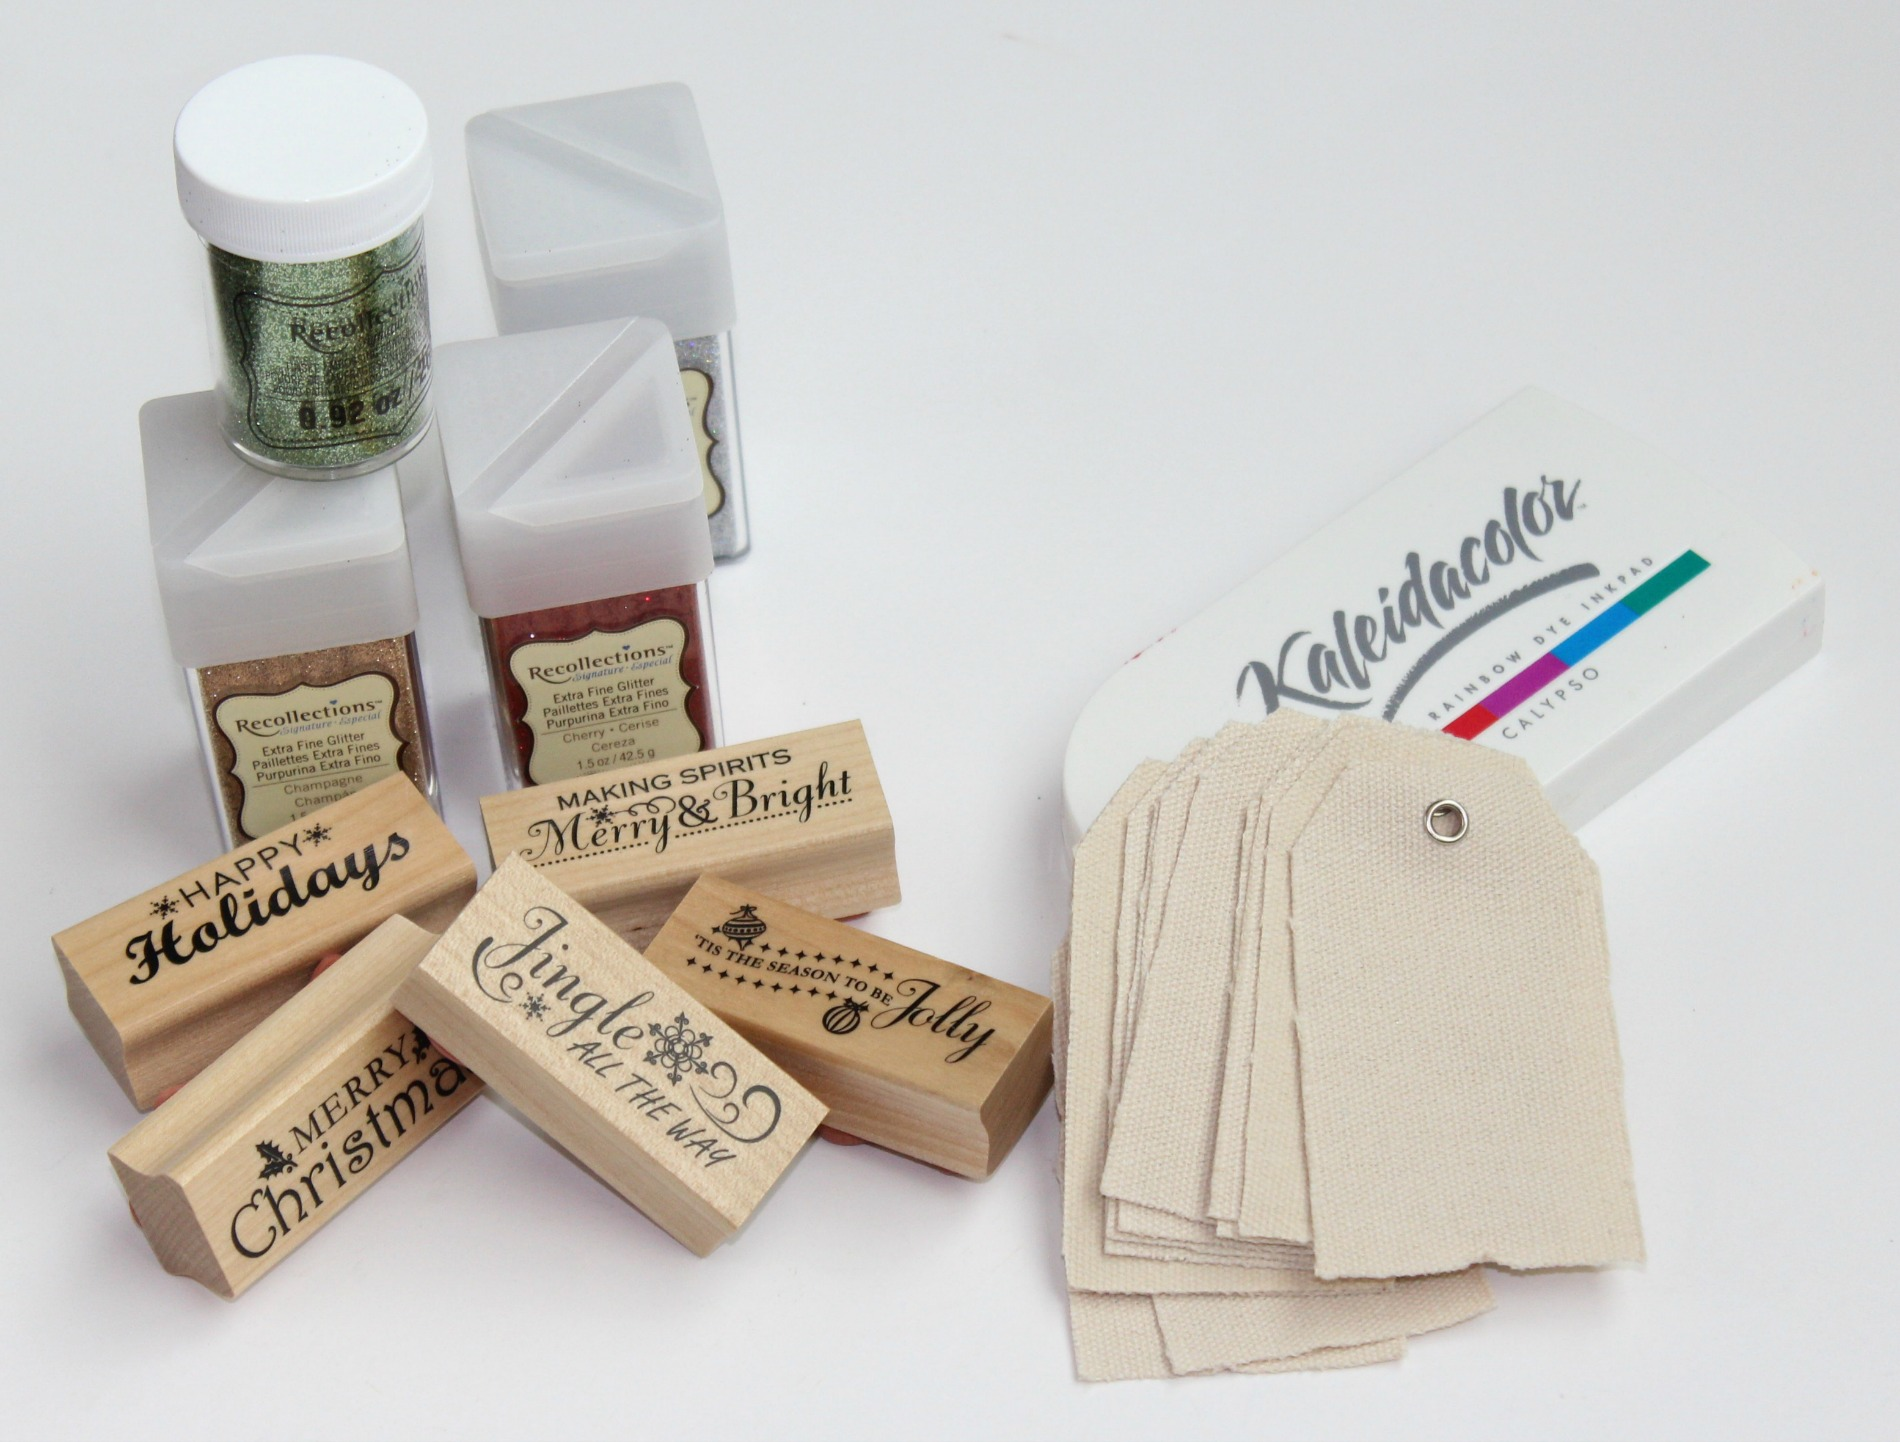 DIY glittery Christmas gift tags - materials